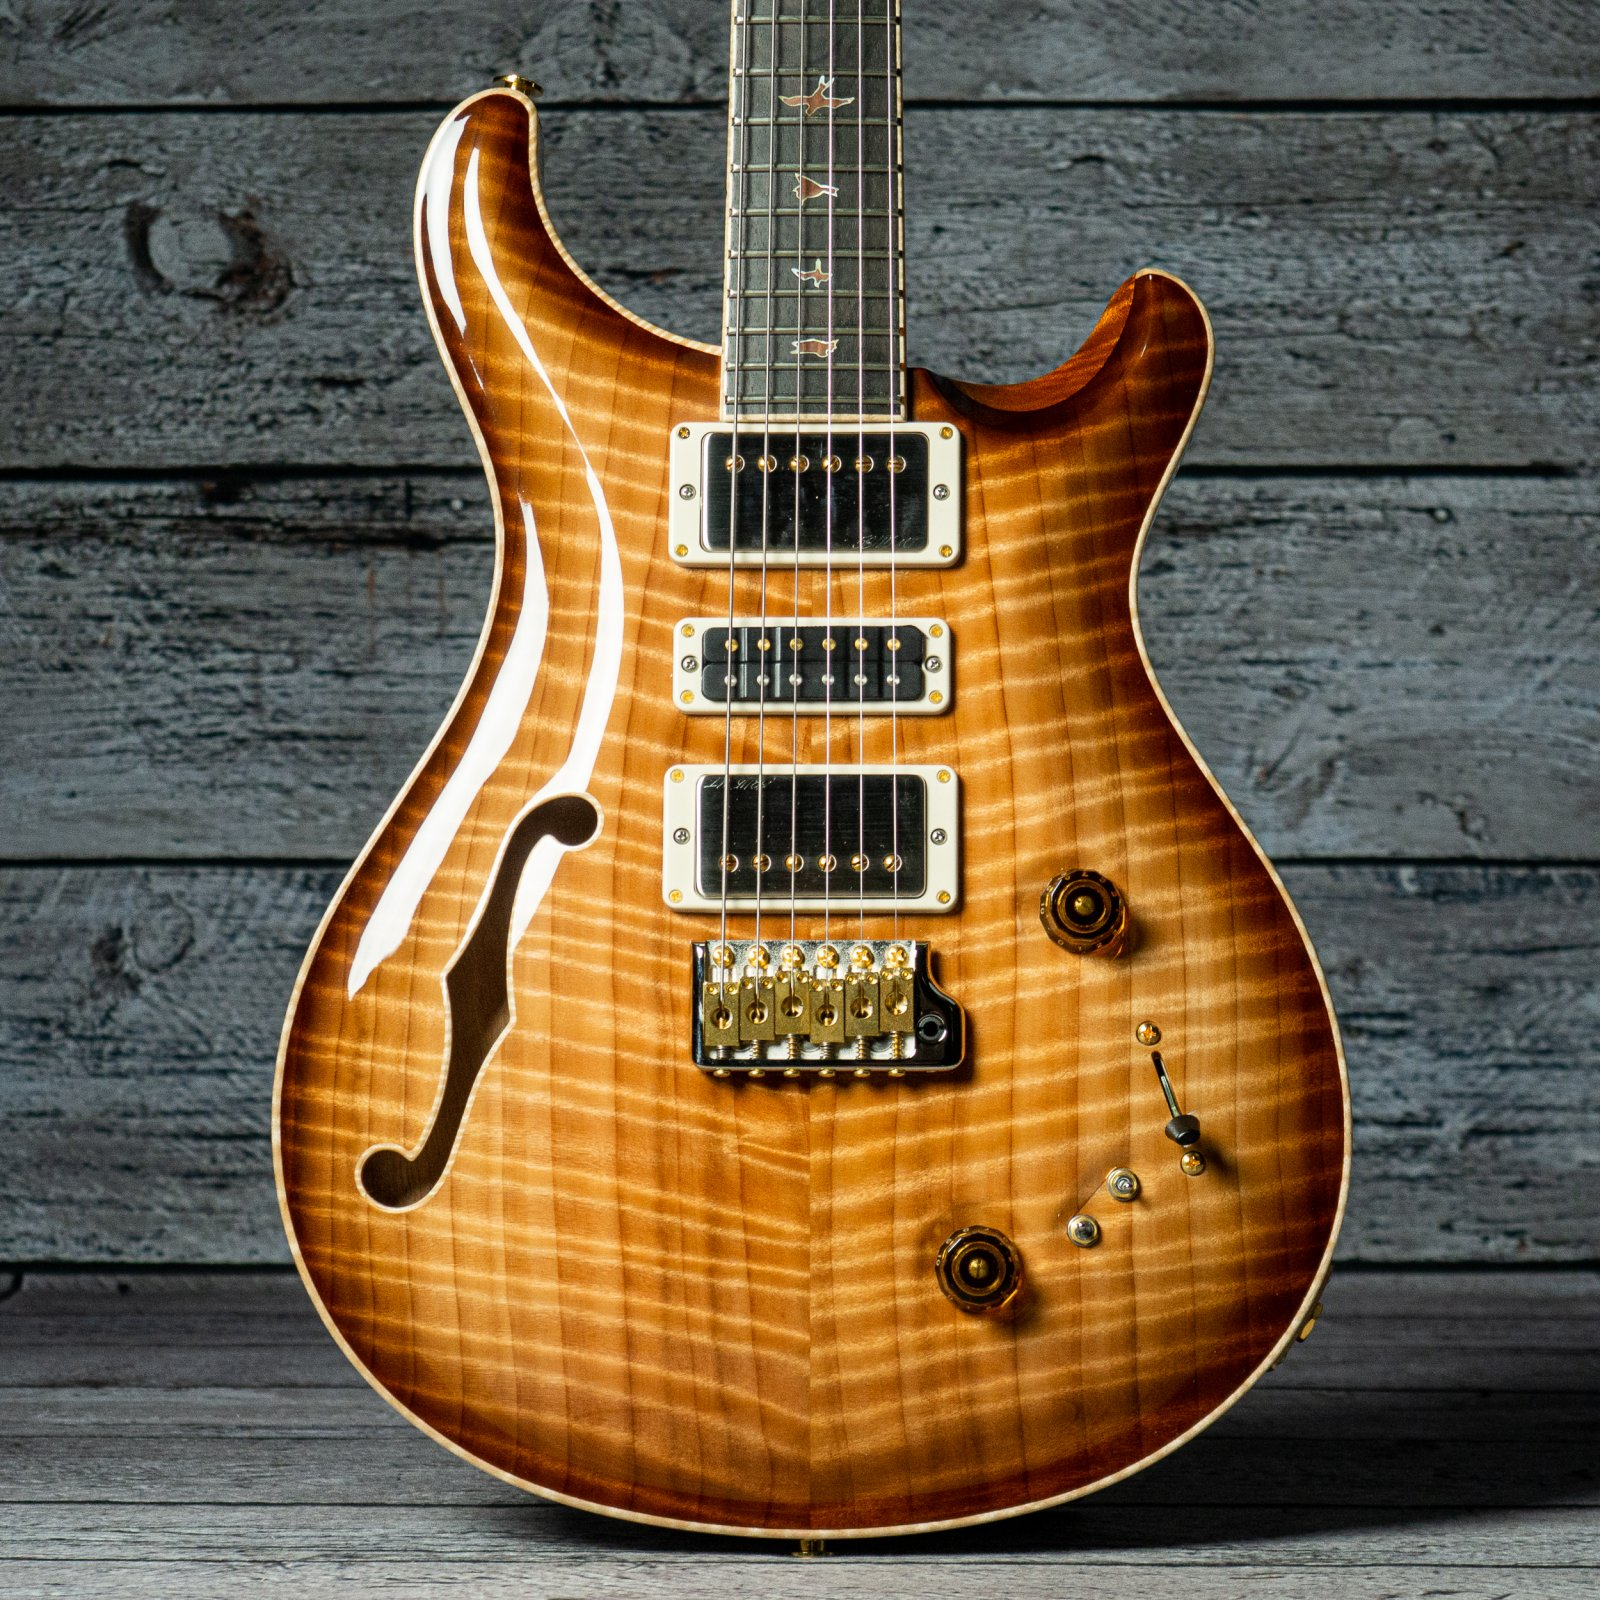 Paul Reed Smith Private Stock Special Semi-Hollow - Figured Redwood Smoke Burst